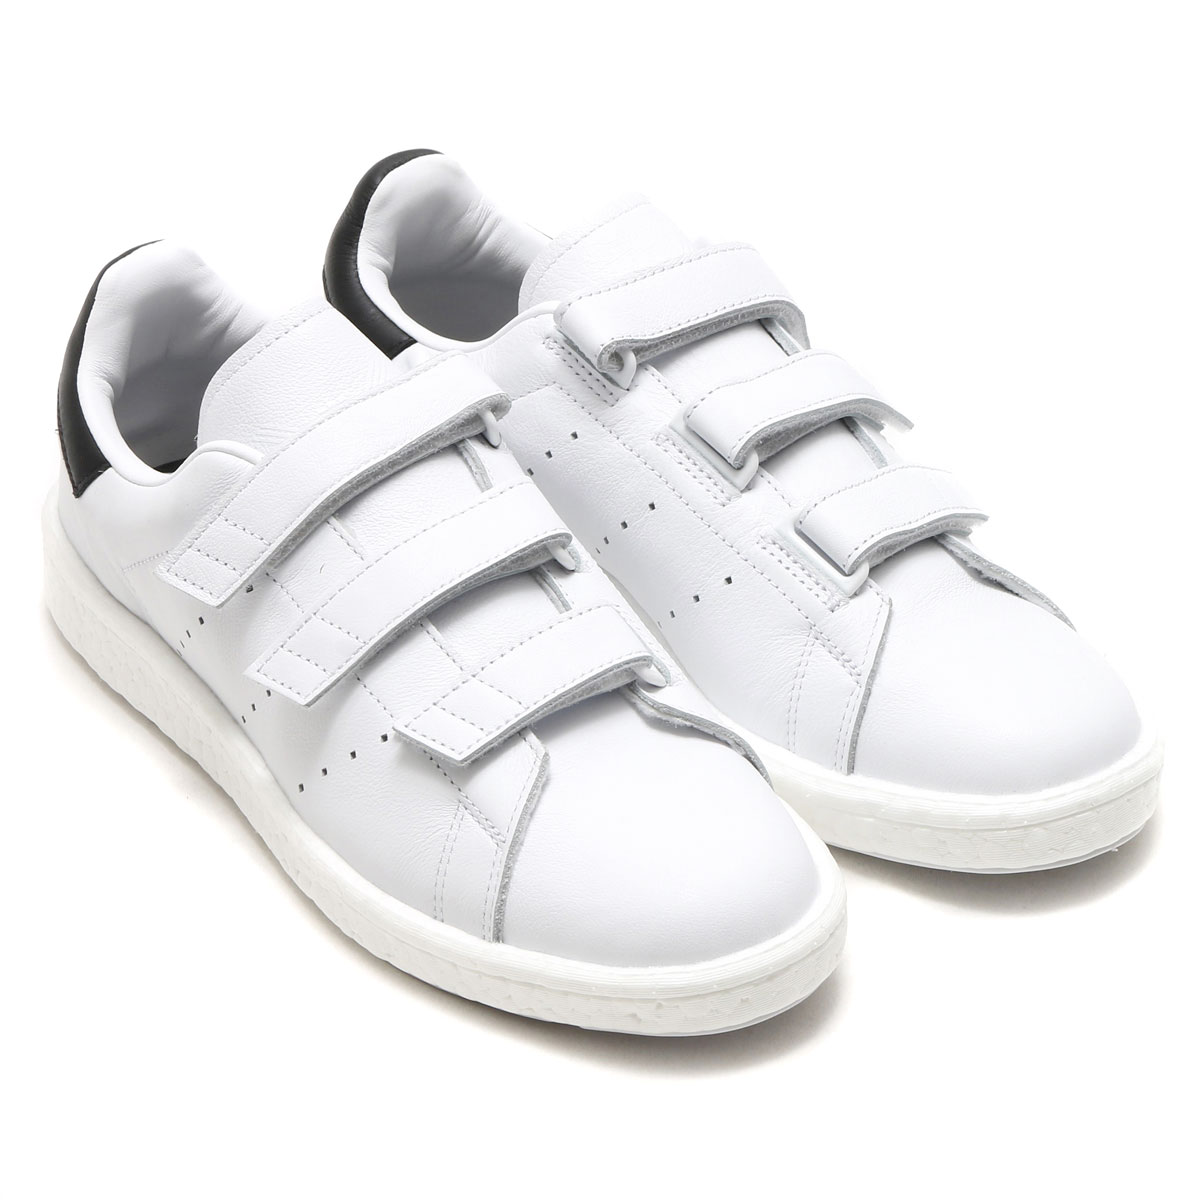 12ae61800e00 adidas Originals WM STAN SMITH CF (Adidas originals Stan Smith) (RUNNING  WHITE) 17FW-I